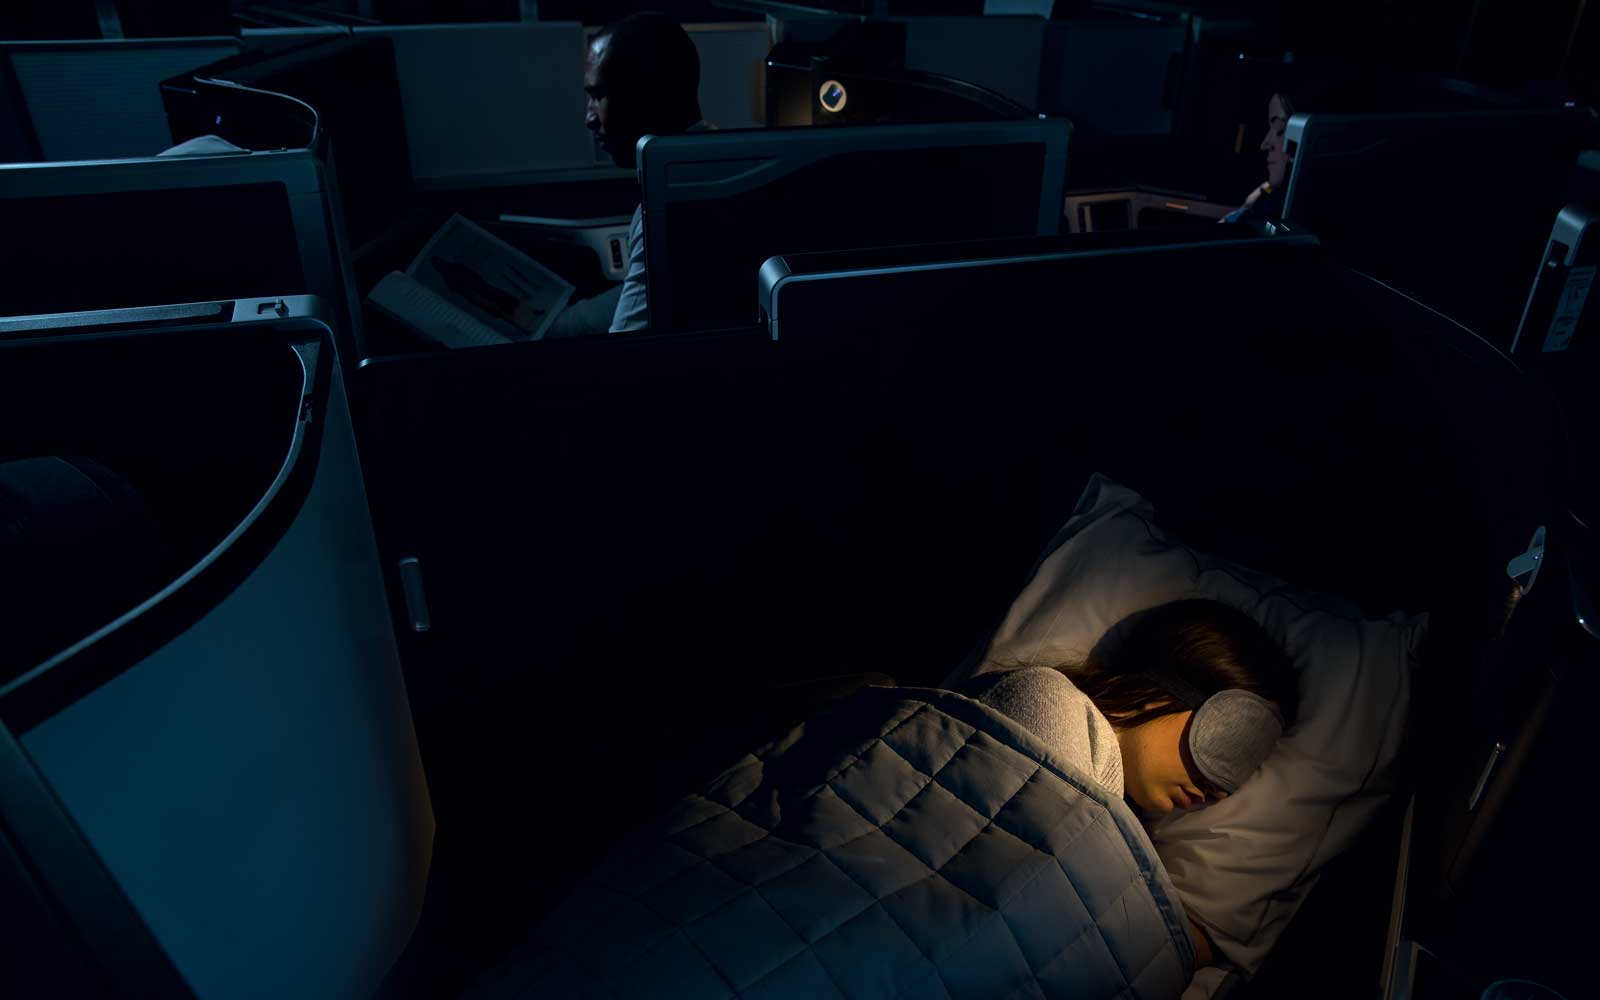 British Airways' New Business Suites Will Make You Feel Like You're Actually Flying Private